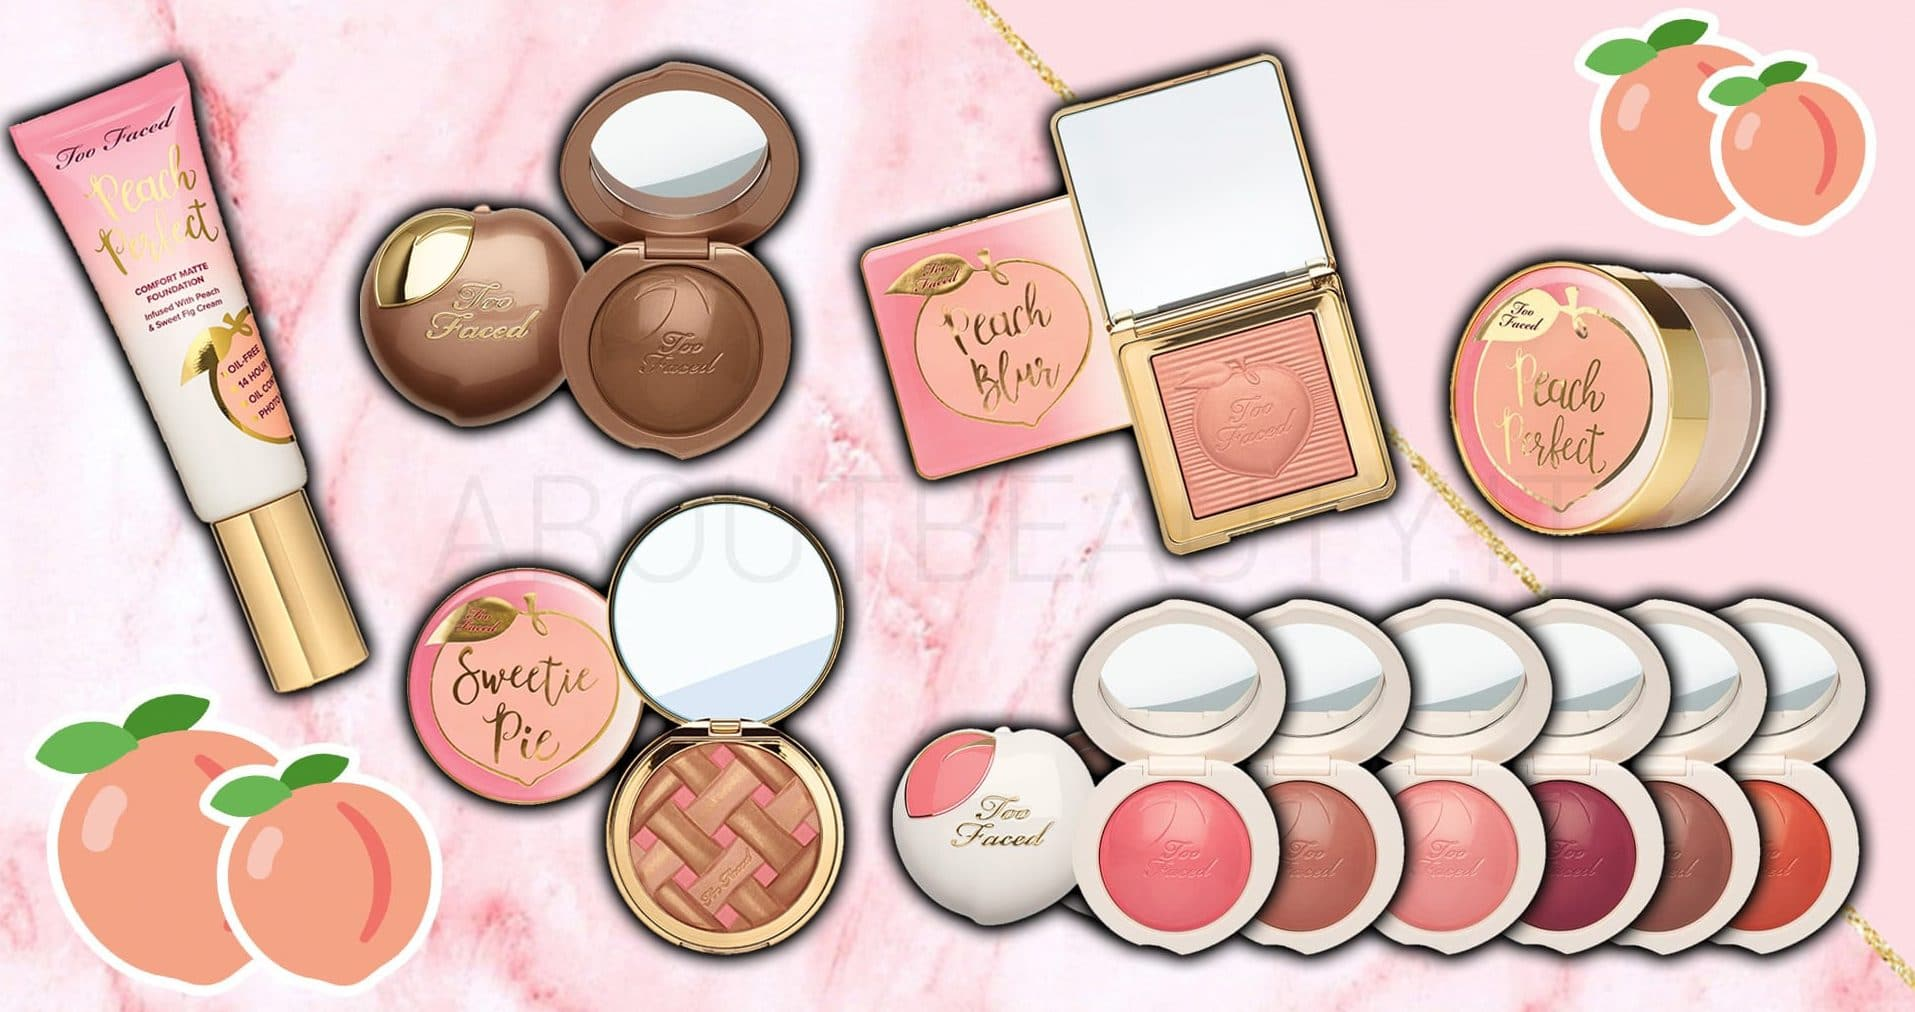 Le novità Too Faced Primavera/Estate 2018 - Review, recensione, info, prezzo, dove acquistare, swatch - Fondotinta Peach Perfect Foundation, Blush Peach My Cheeks, Cipria Peach Blur, Bronzer Sweetie Pie e Bronzed Peach